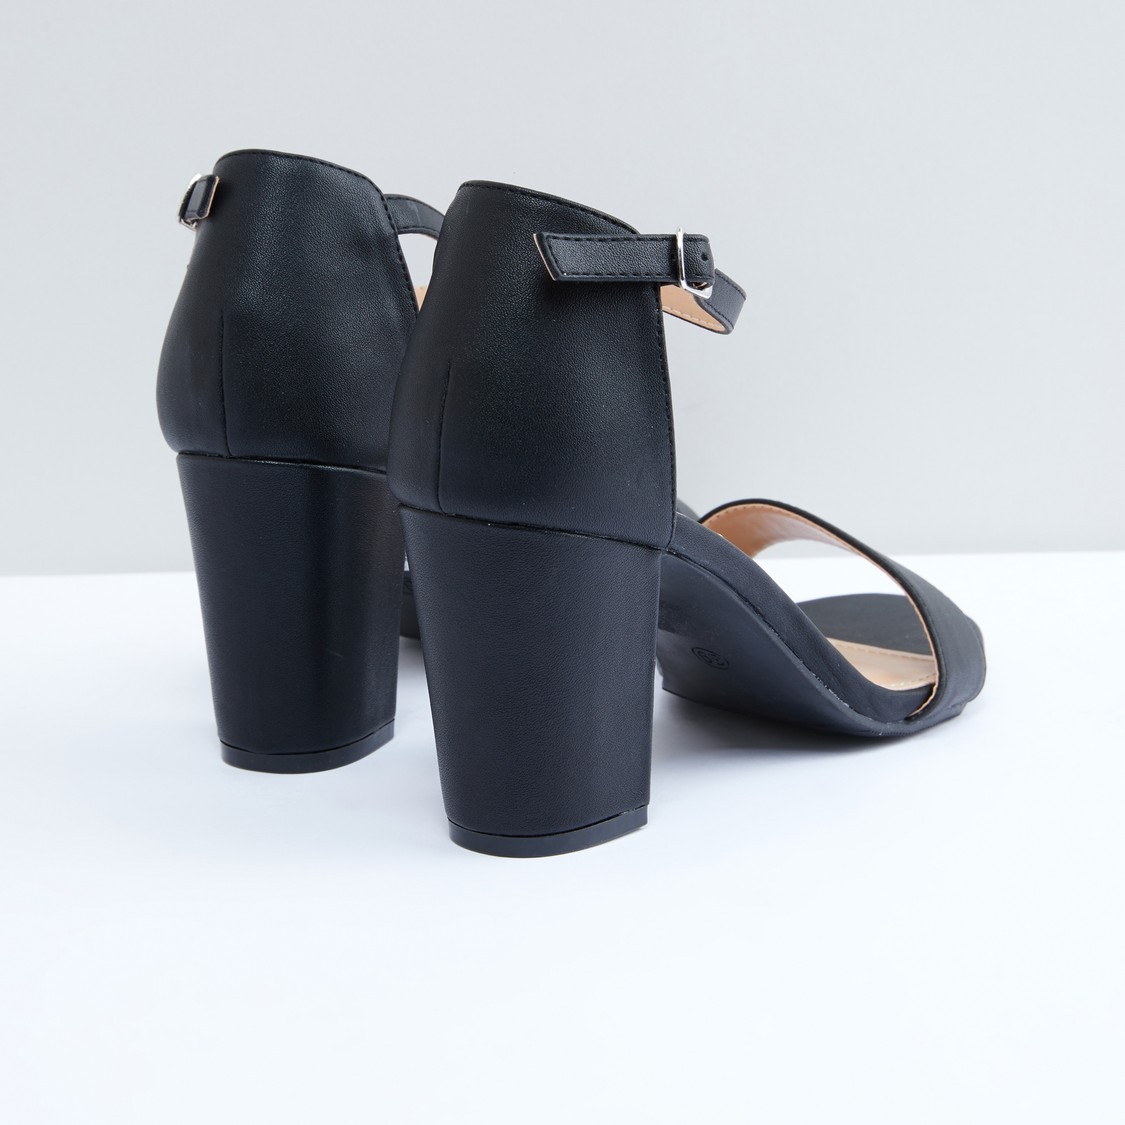 Ankle Strap Block Heel Sandals with Pin Buckle Closure